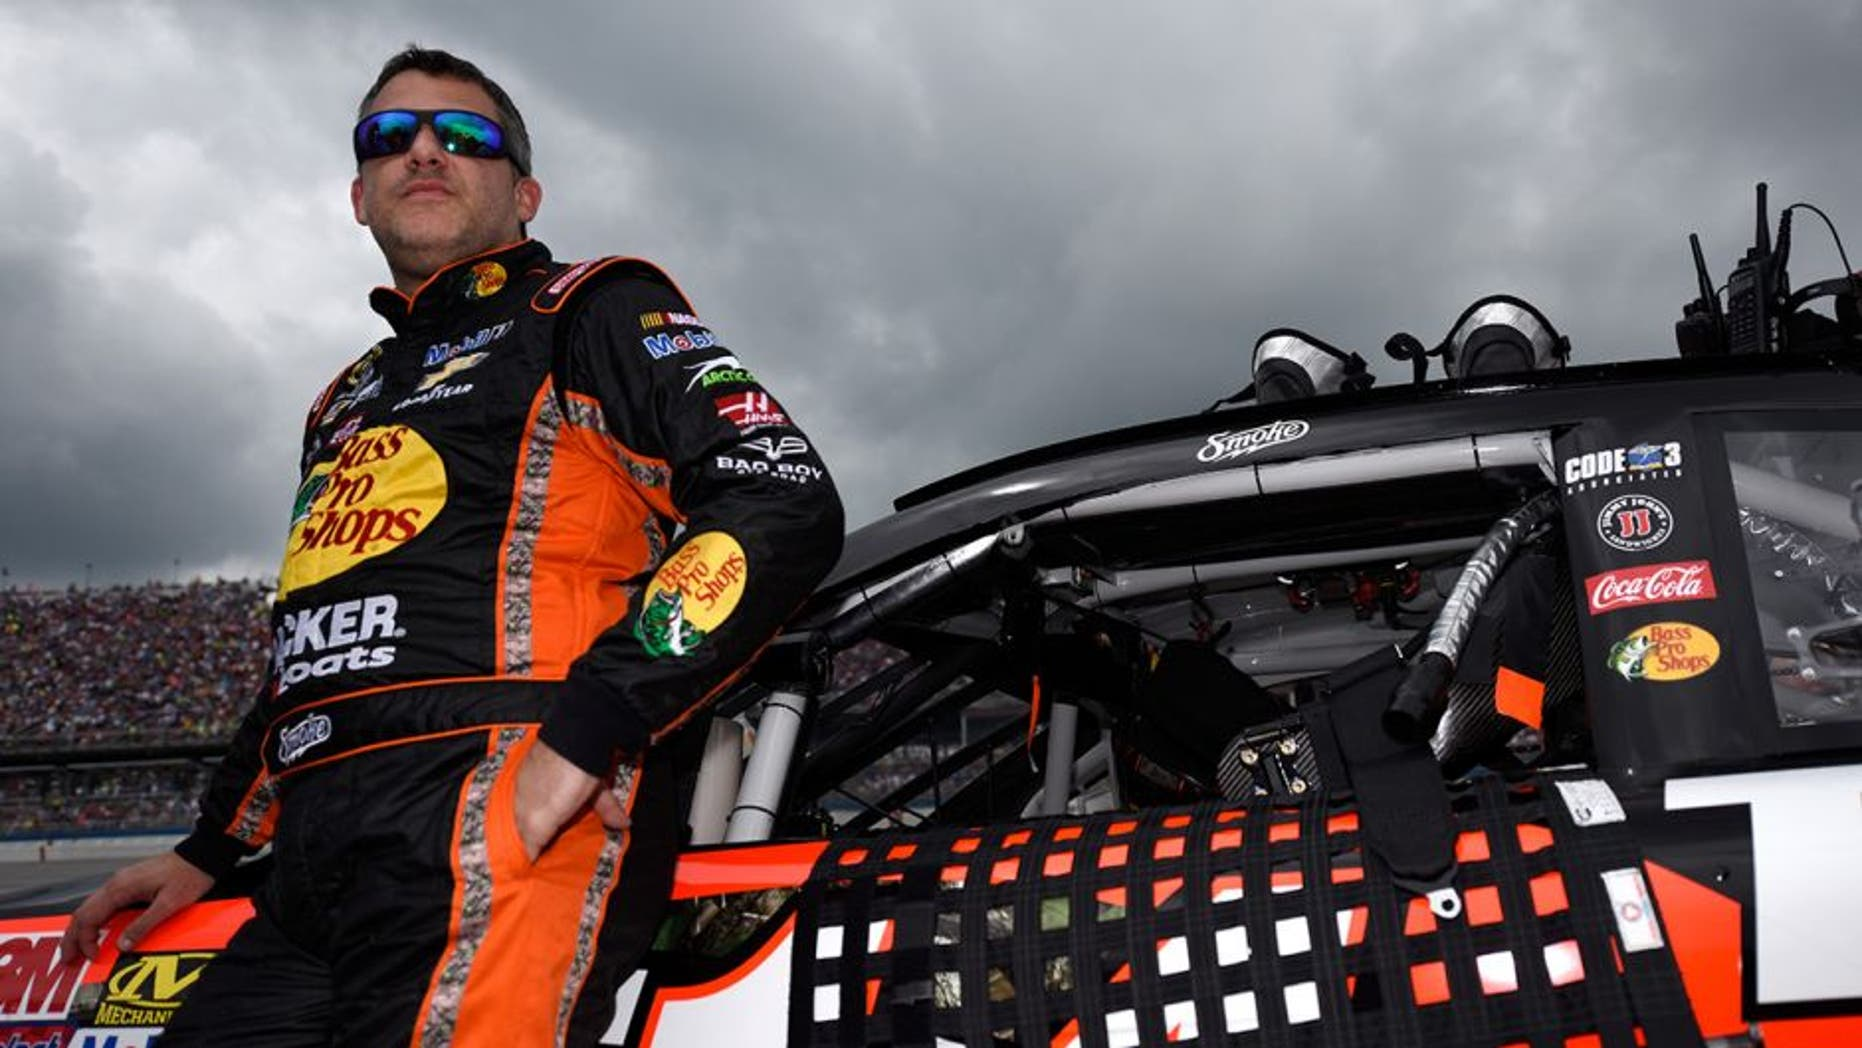 TALLADEGA, AL - MAY 01: Tony Stewart, driver of the #14 Bass Pro Shops Chevrolet, stands on the grid prior to the NASCAR Sprint Cup Series GEICO 500 at Talladega Superspeedway on May 1, 2016 in Talladega, Alabama. (Photo by Jared C. Tilton/Getty Images)